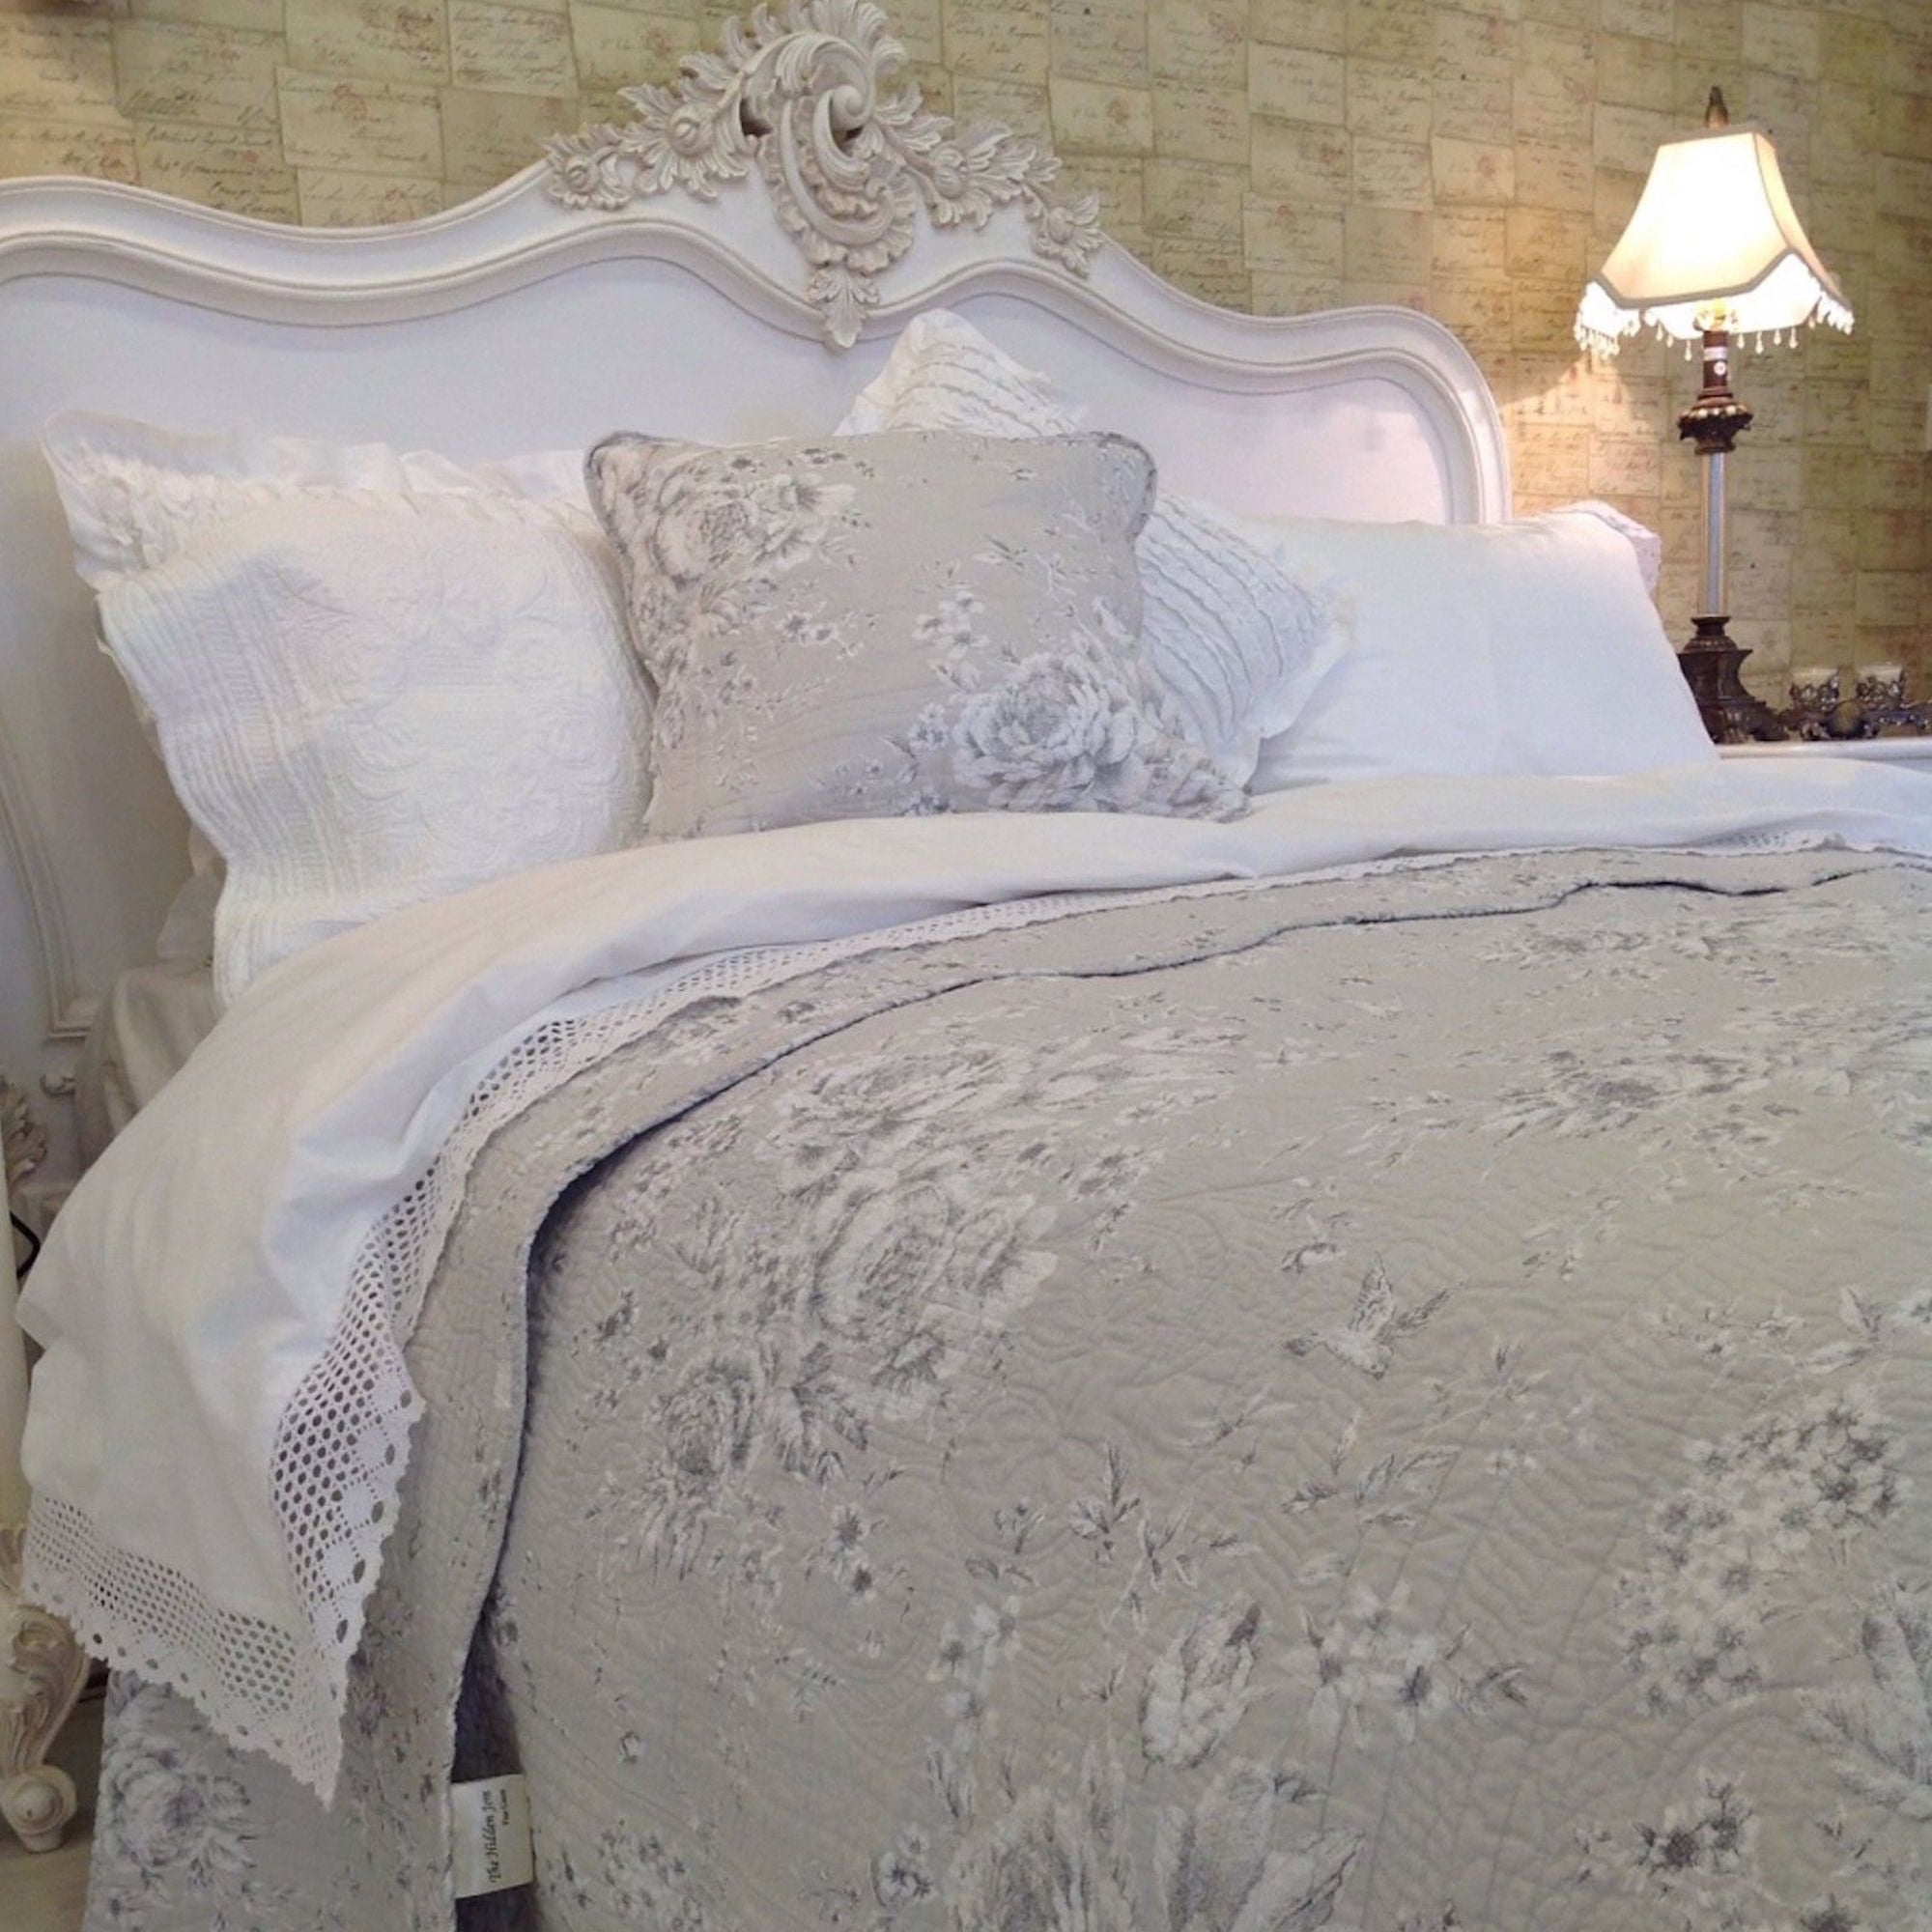 hill farmhouse couldn myself and using a bedding top spring was few pillows pillow have this shams so cedar darling i at t linens vintage bought when round help for thing bed